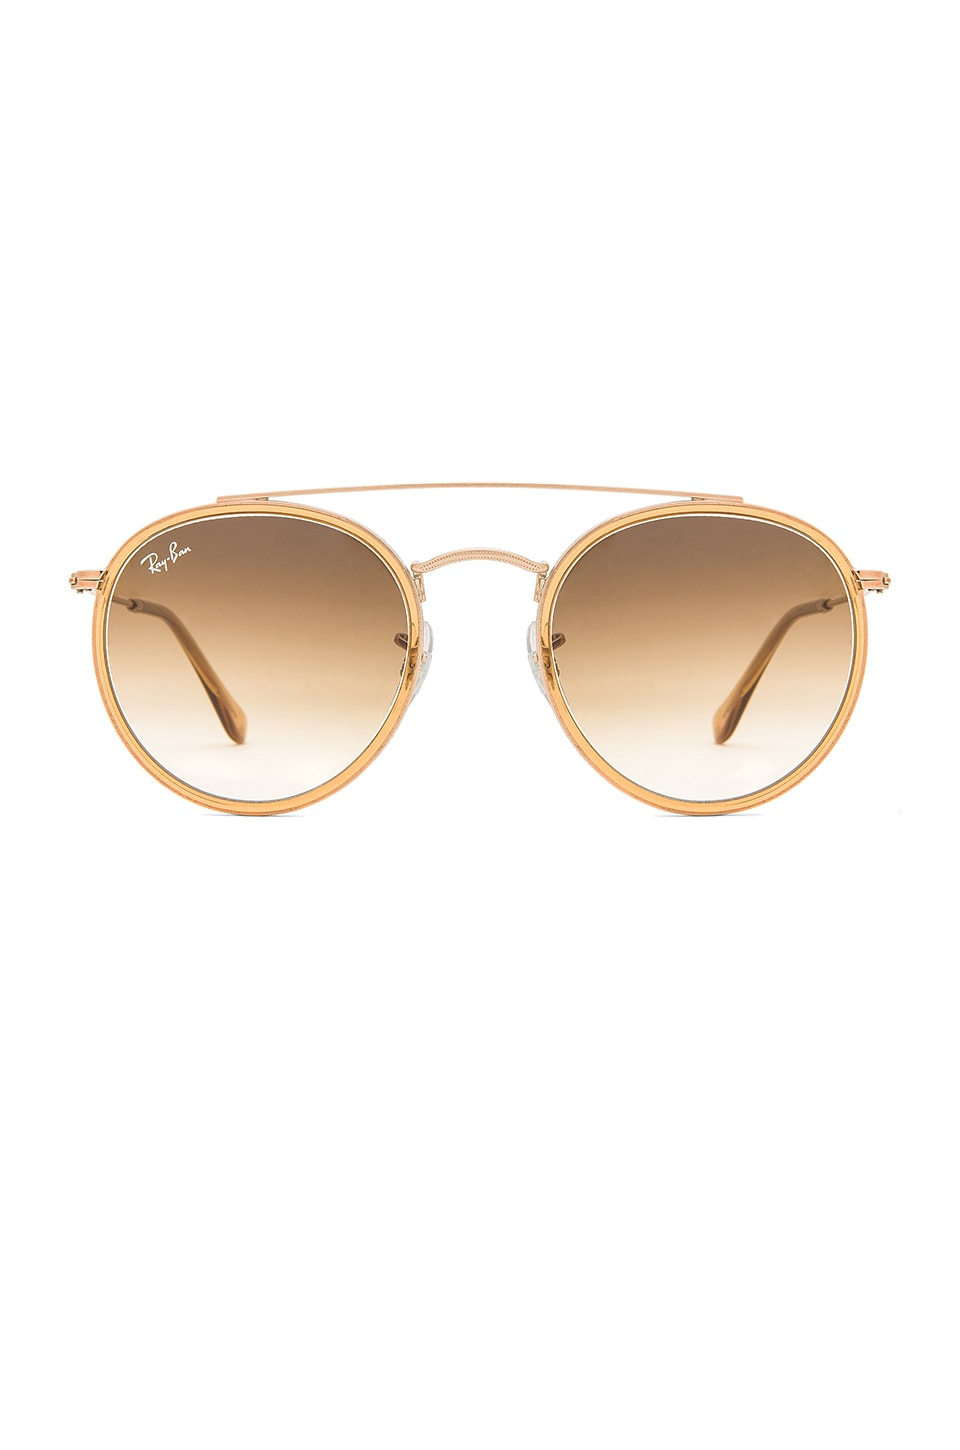 Ray-Ban Round Double Bridge in Light Brown & Brown Gradient